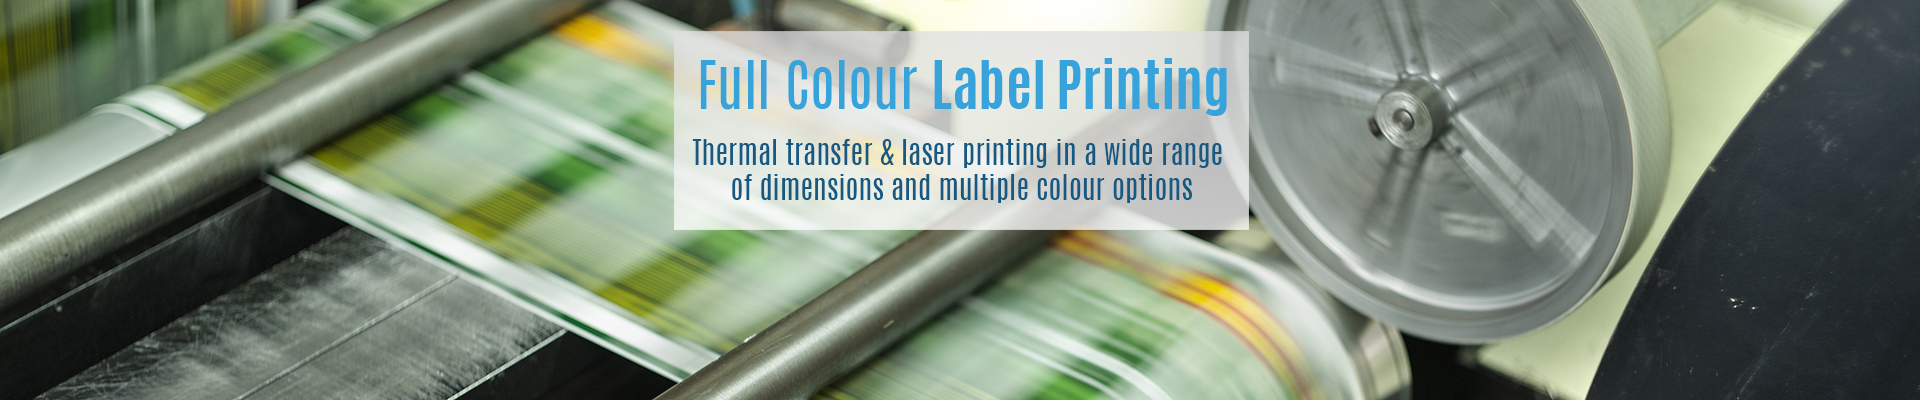 Full Colour Label Printing